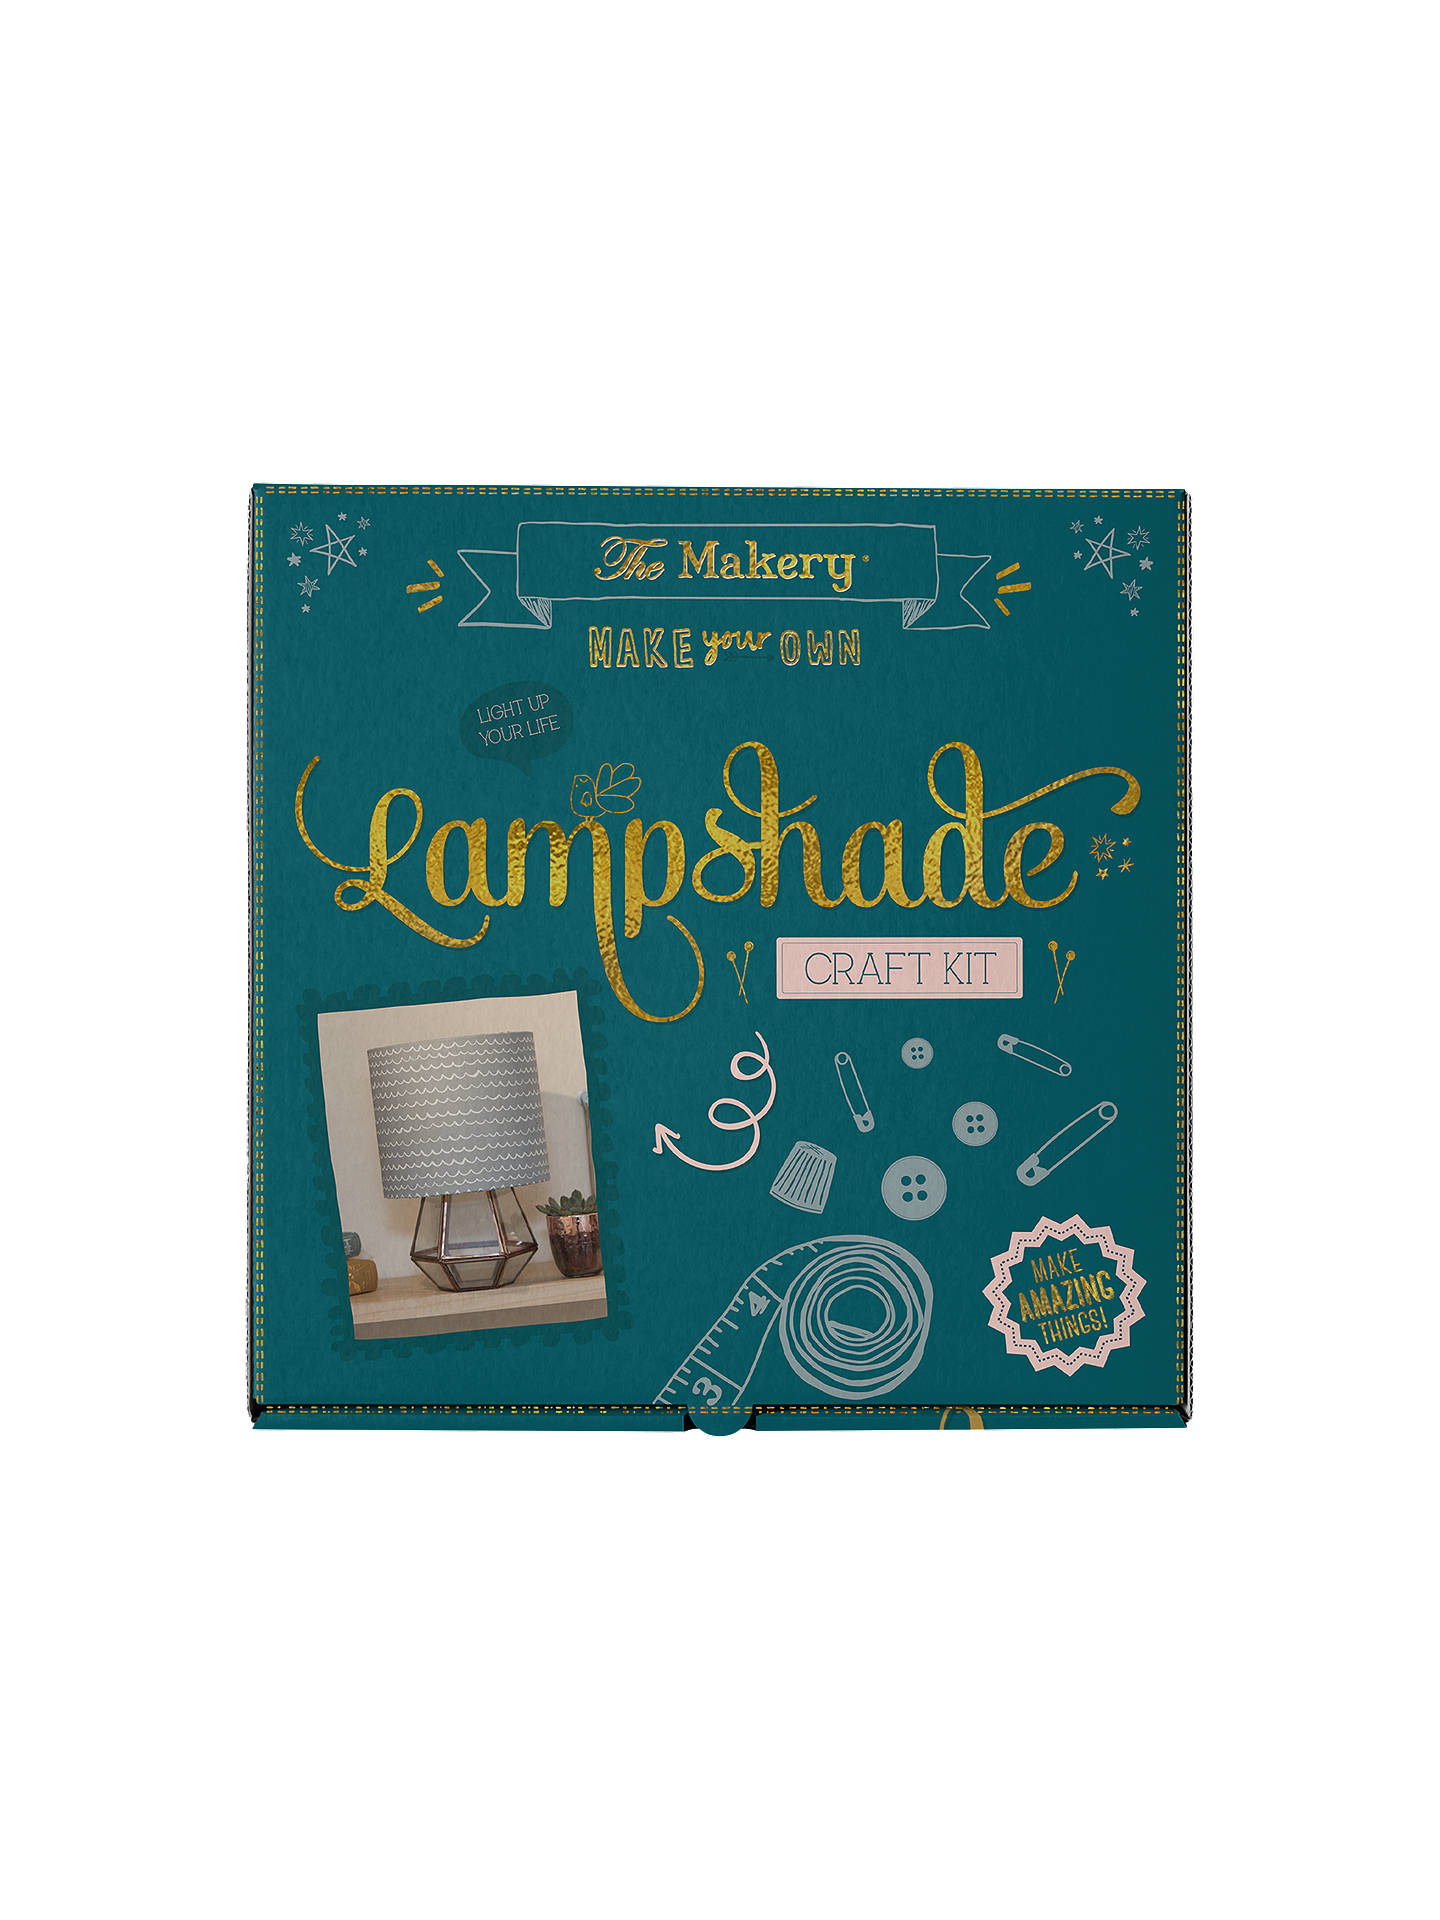 Buy The Makery Make Your Own Lampshade Craft Kit Online at johnlewis.com